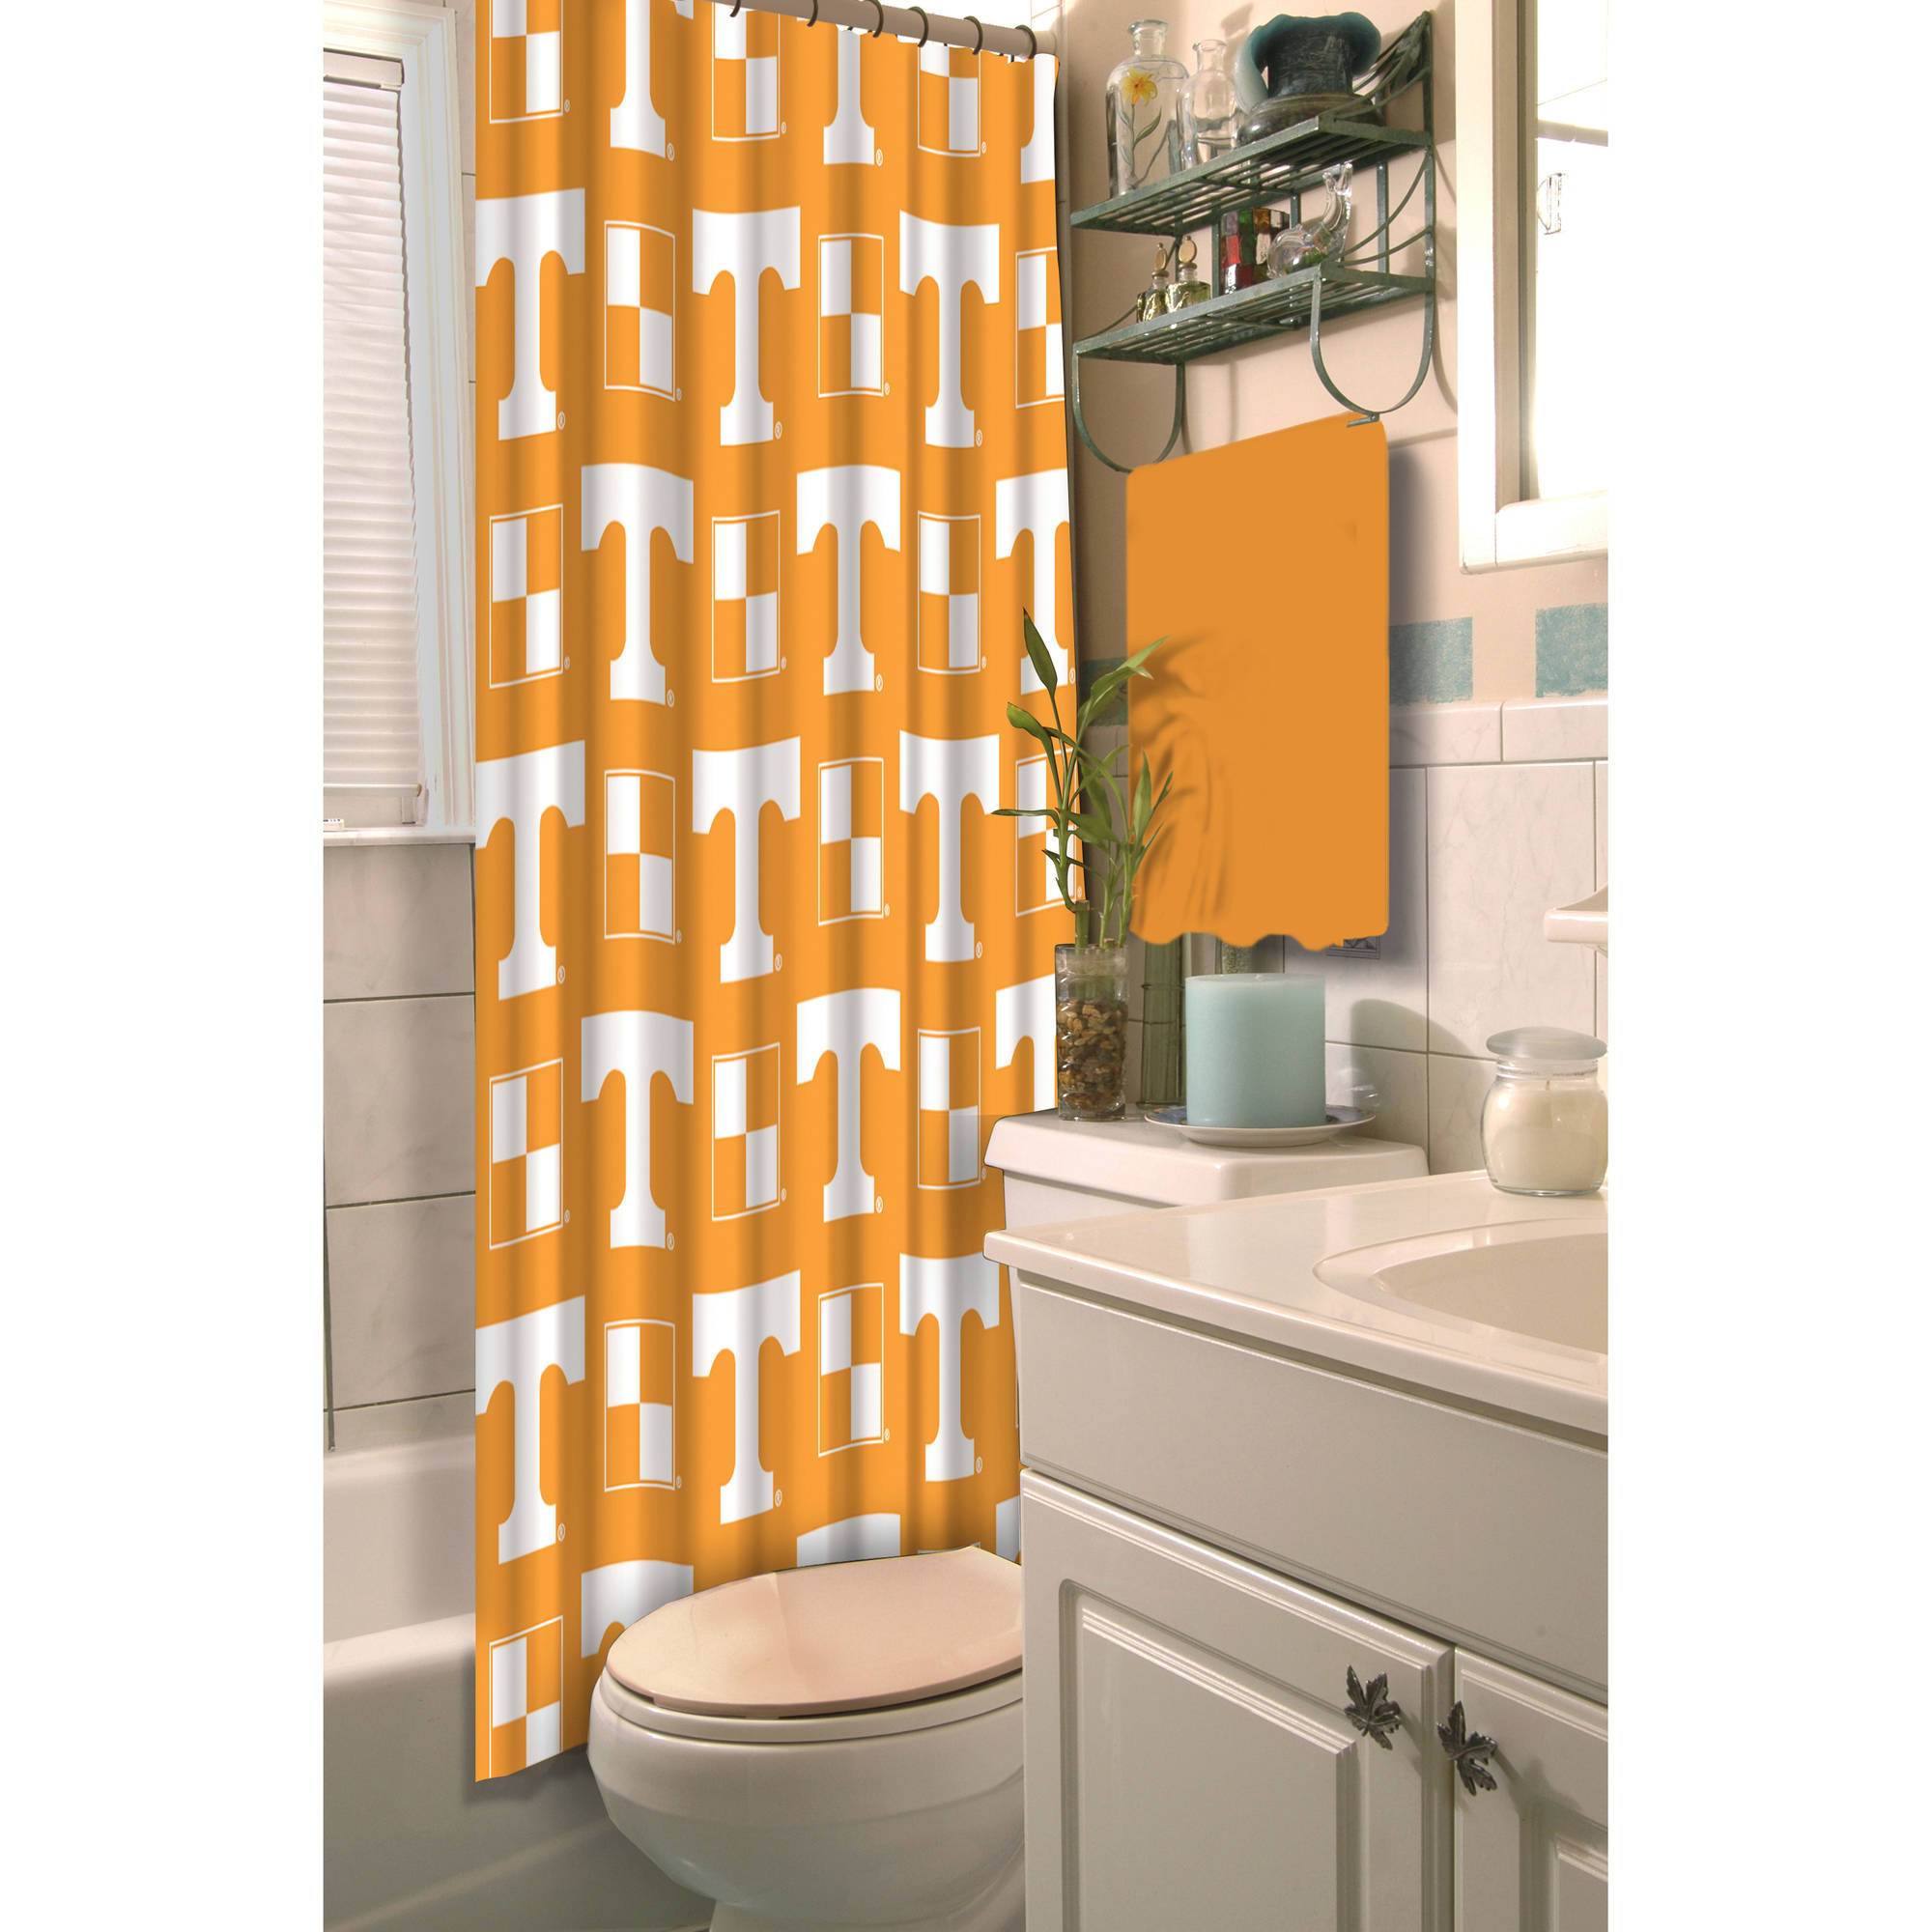 NCAA University of Tennessee Decorative Bath Collection - Shower Curtain